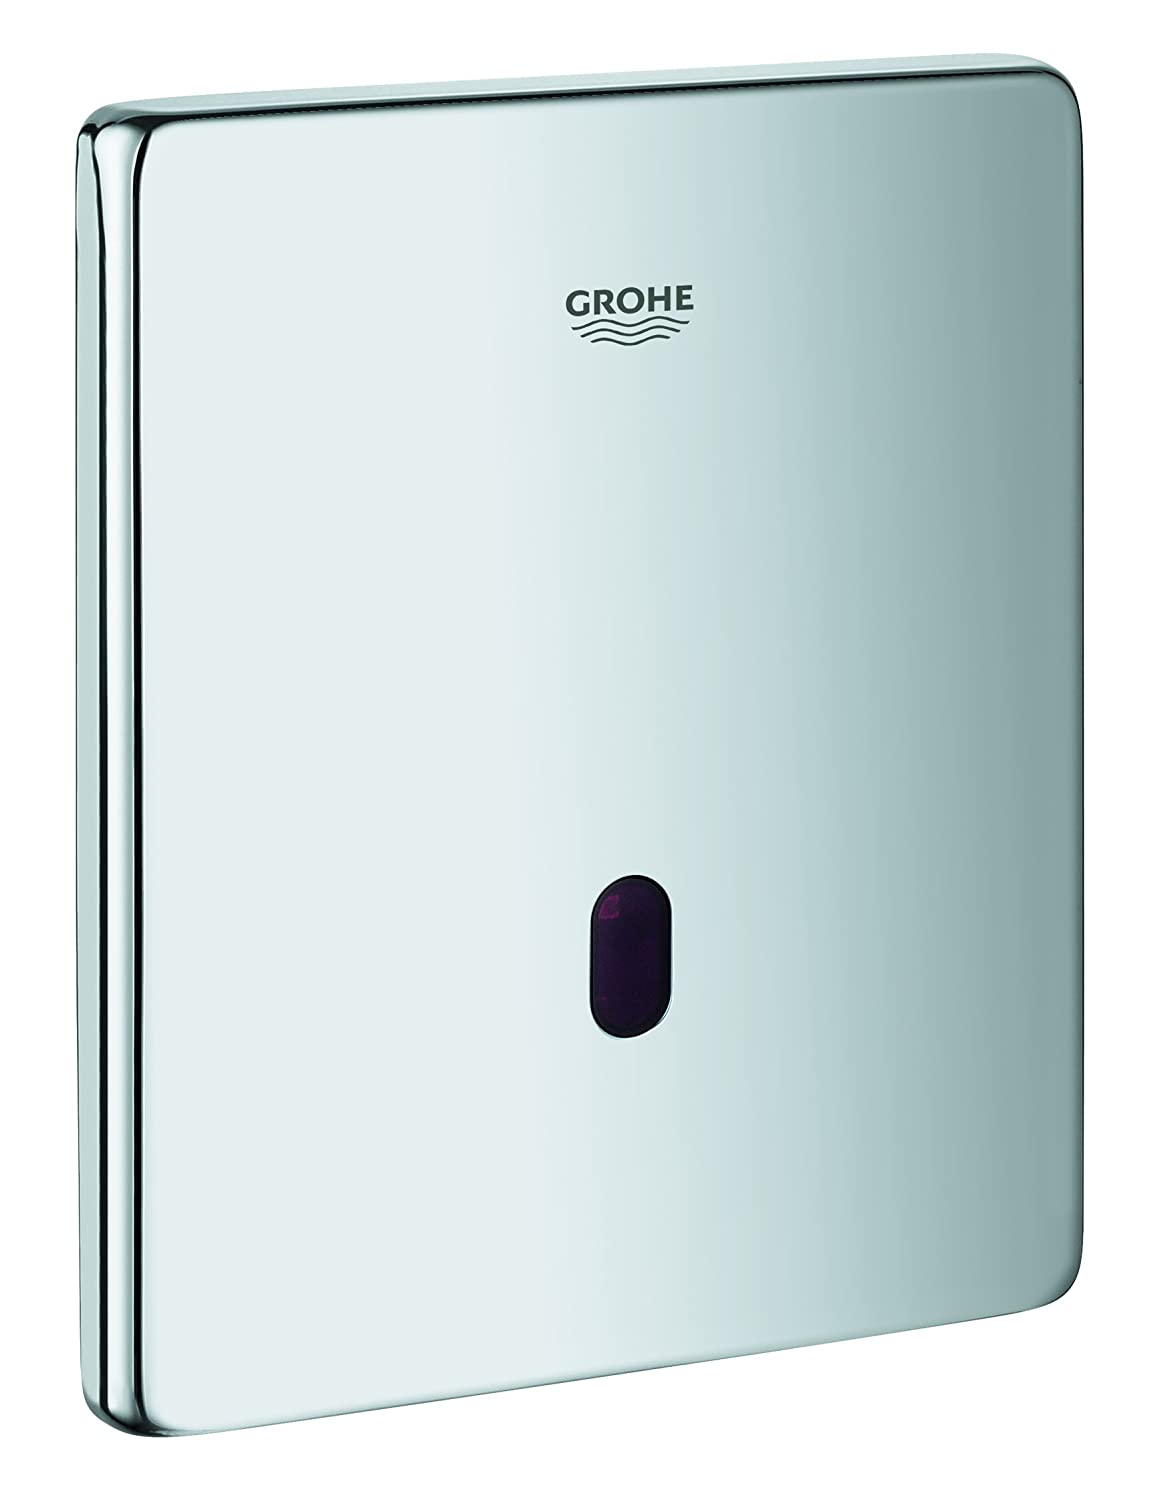 hot sale GROHE Infra-Red Electronic For Urinal (1), 37503000